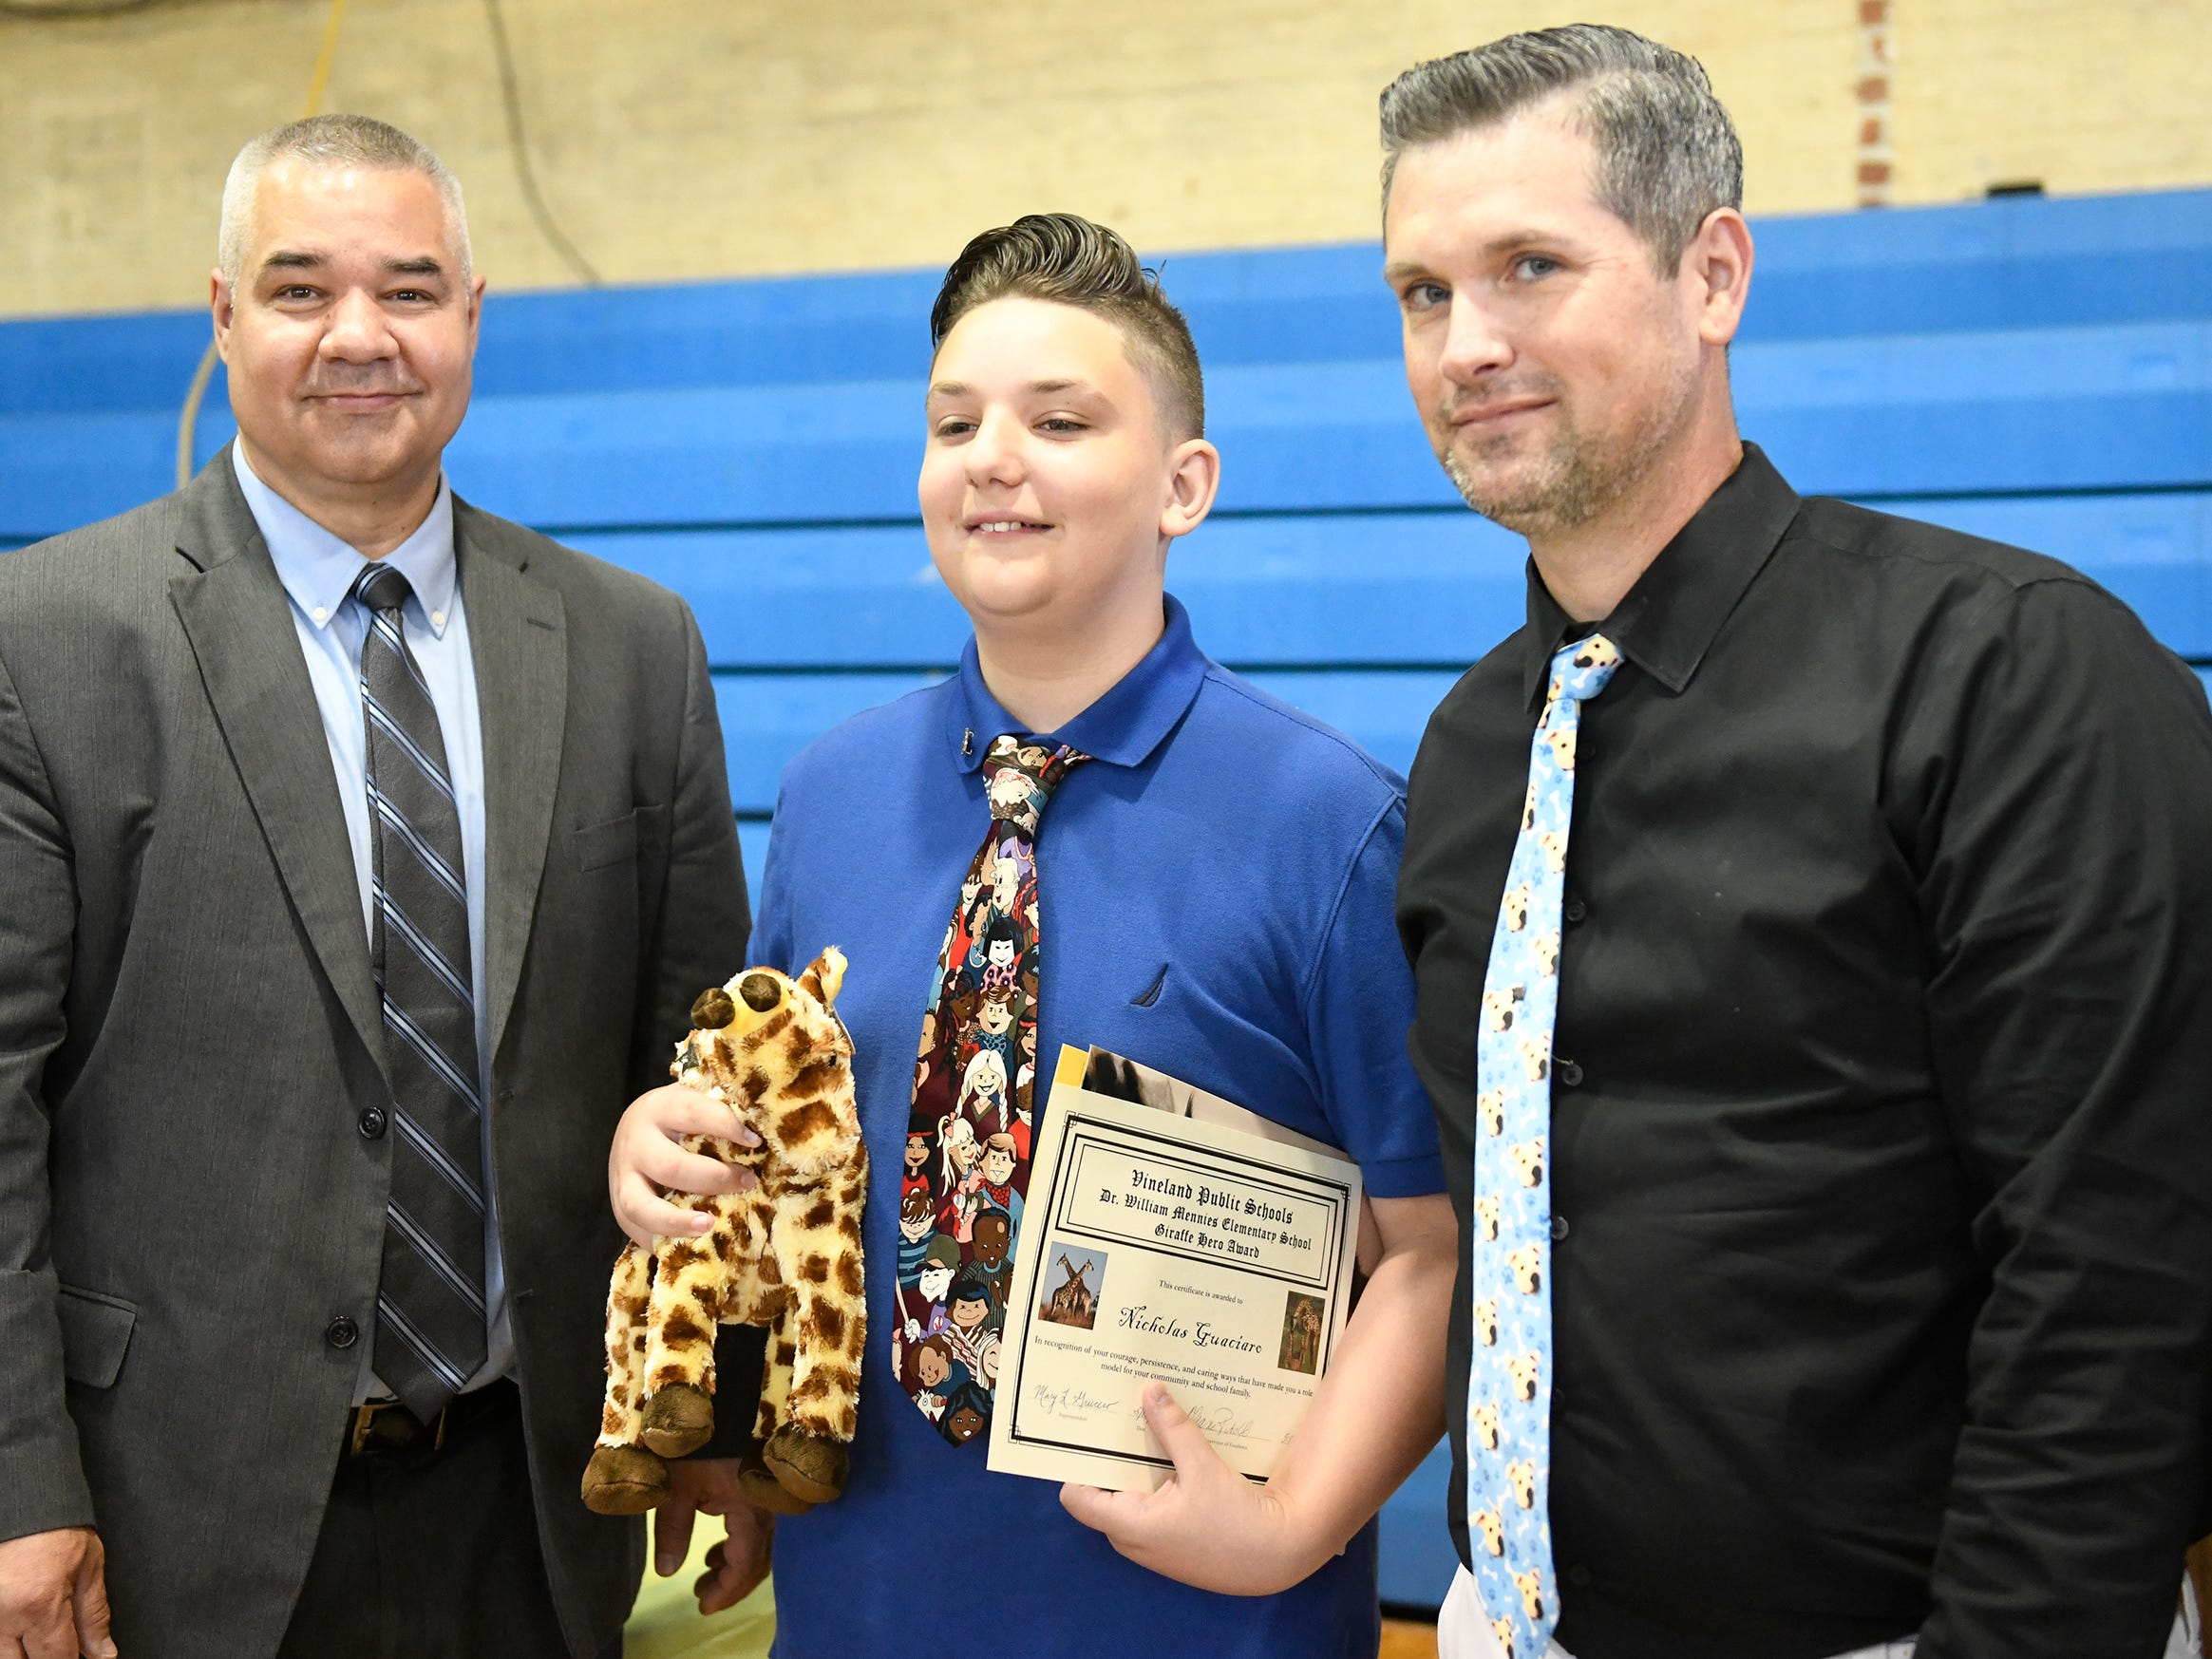 Mennies Elementary School student Nicholas Guaciaro was presented with a Giraffe Hero Award during a special ceremony on Wednesday, May 15, 2019.